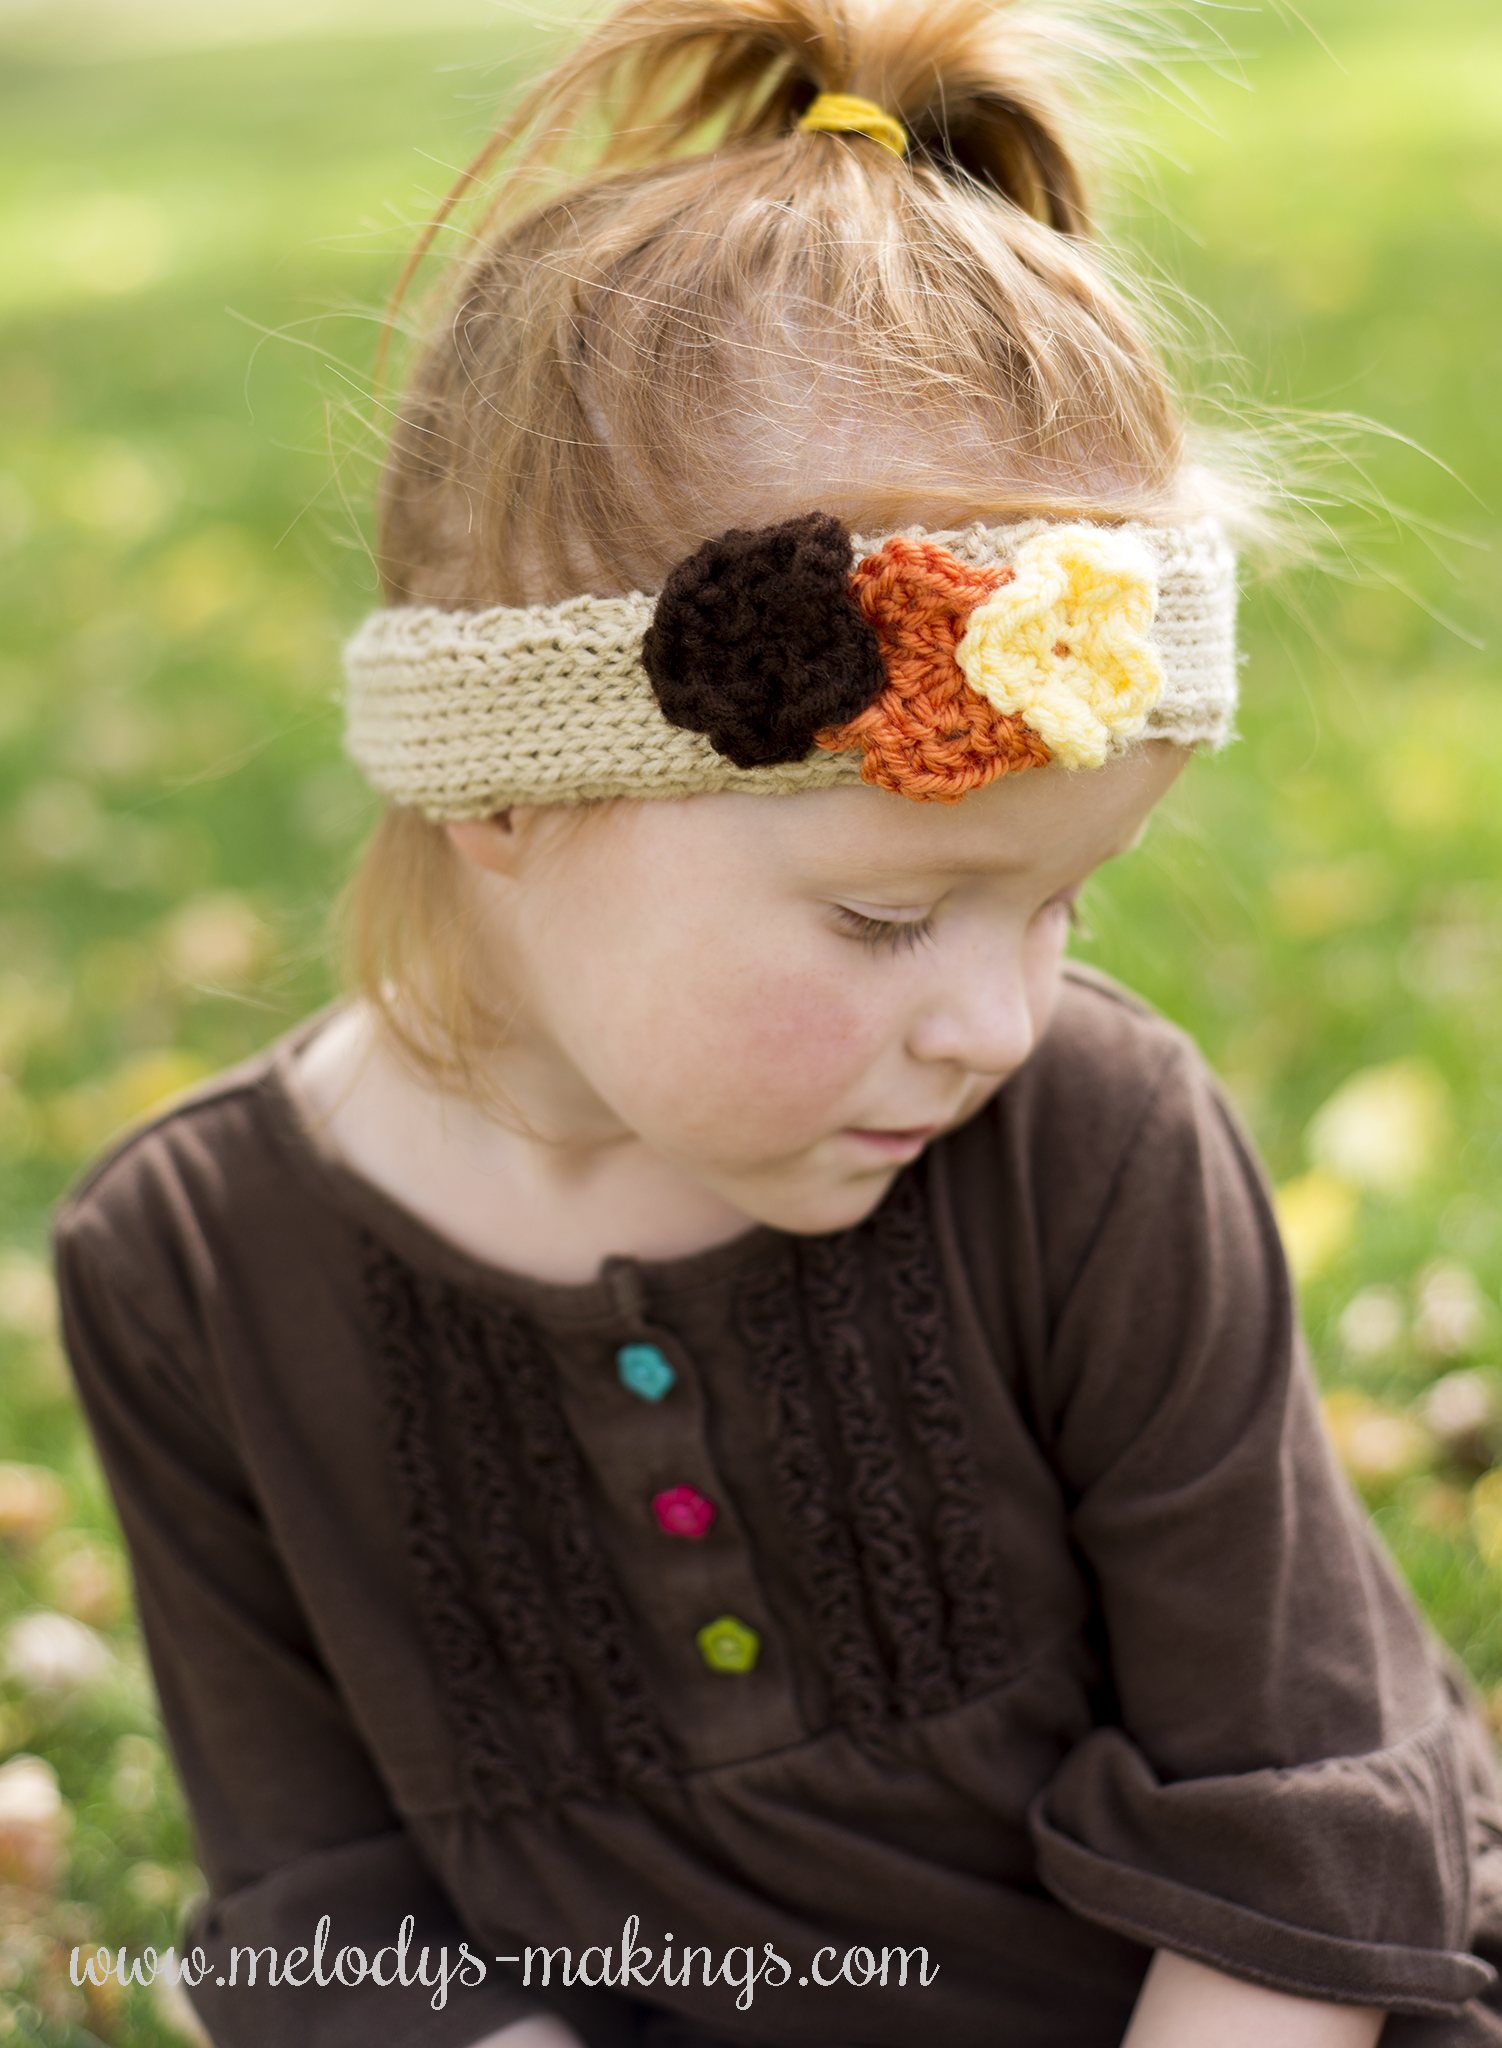 Free Knitting Patterns For Head Warmers Cool Inspiration Design